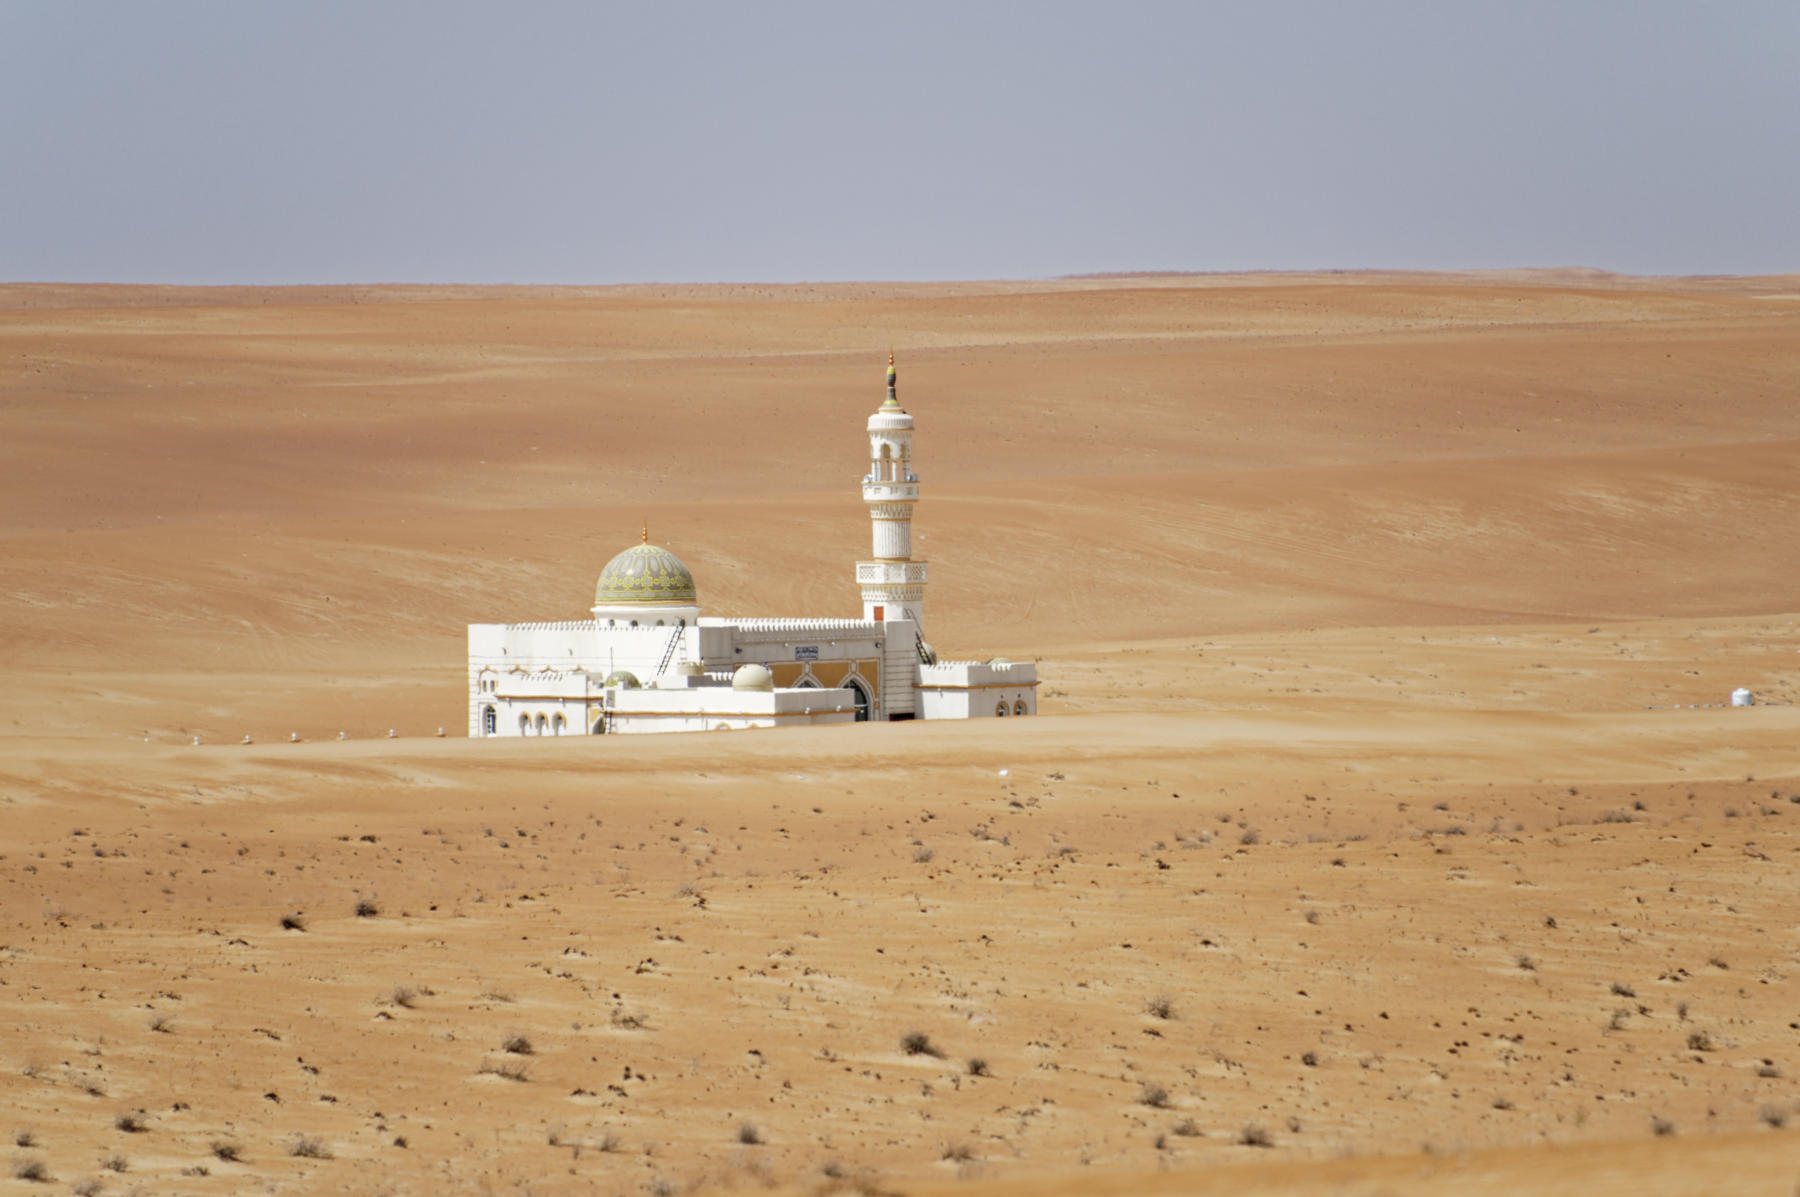 A mosque in the desert, Oman